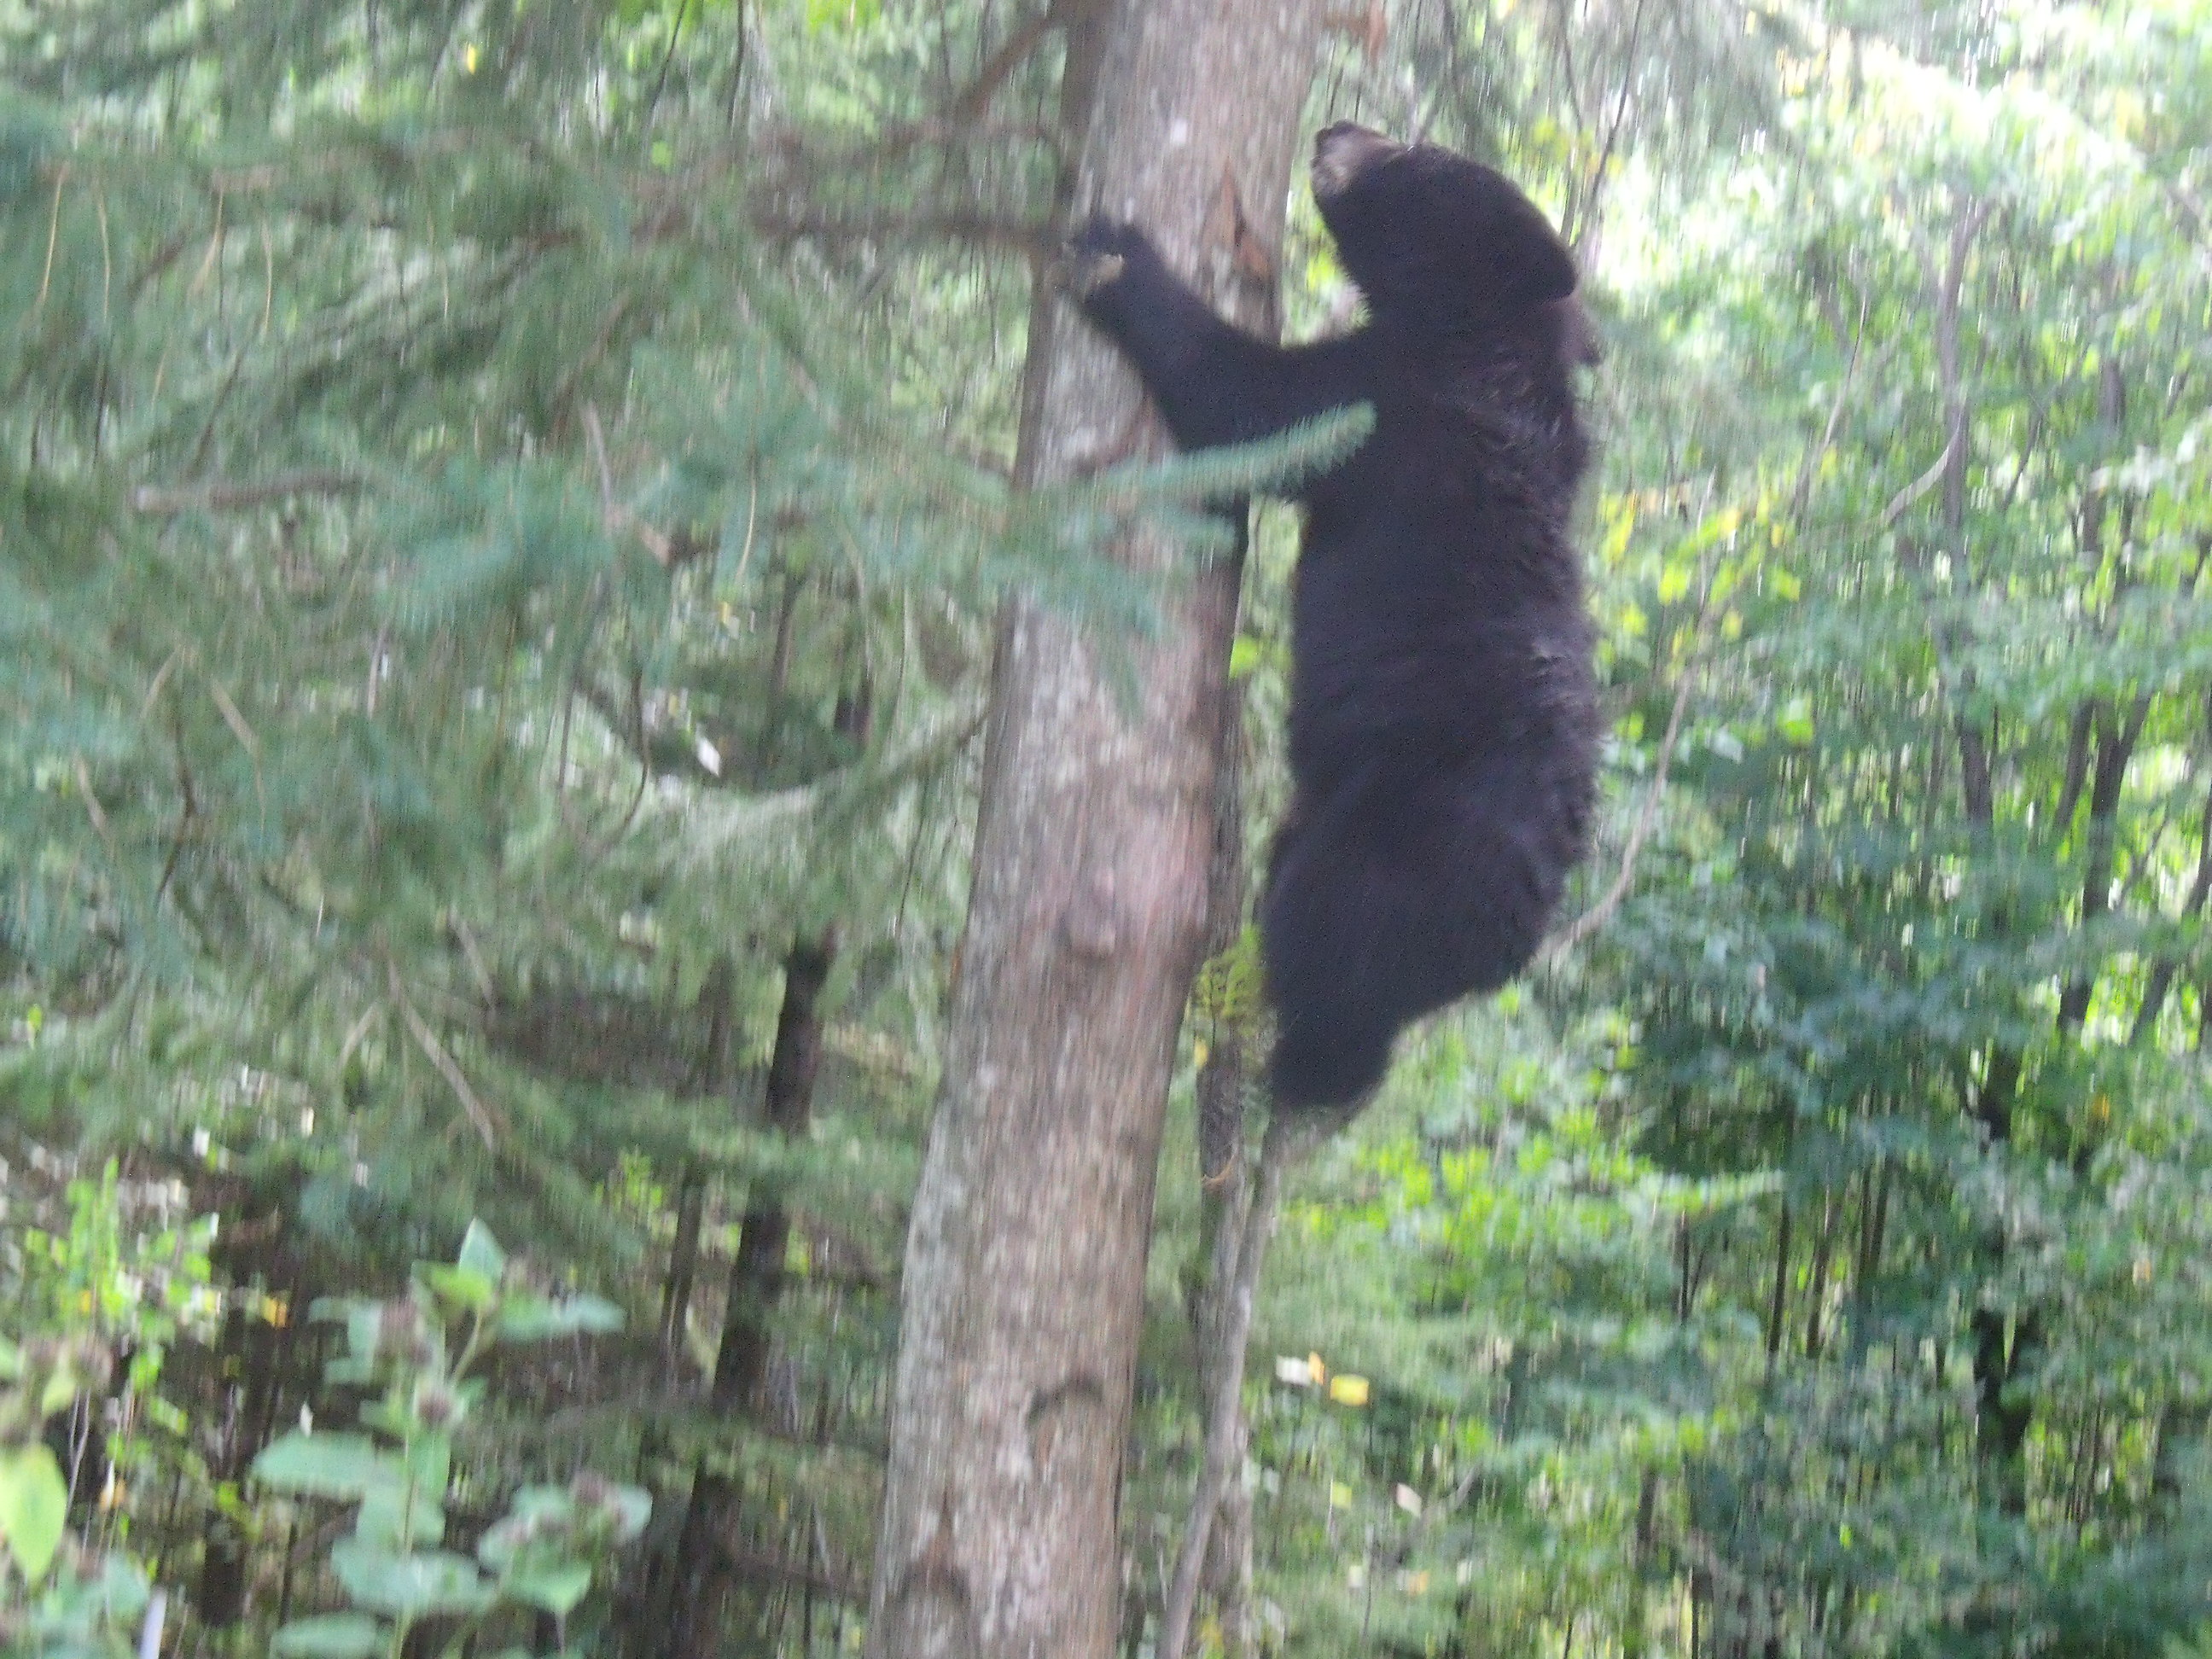 Black bear dashing up a maple tree